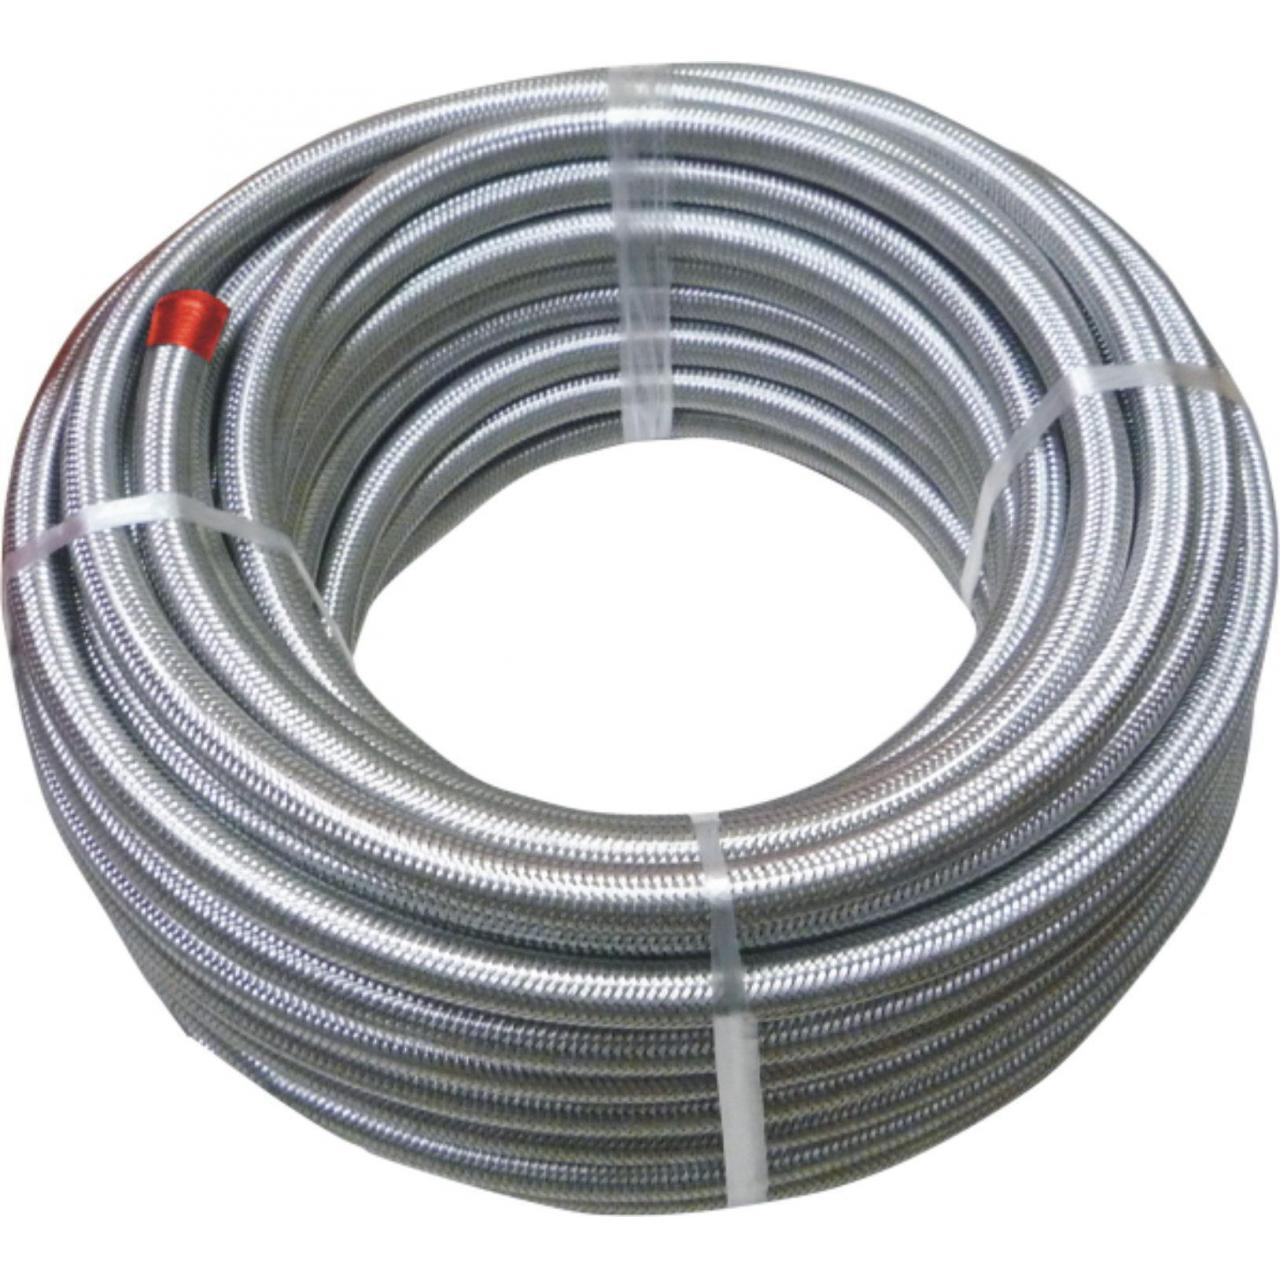 Gas pipe series CNS9620 gas fuel gas pipe series / protective steel Siwa Si tube (containing size)